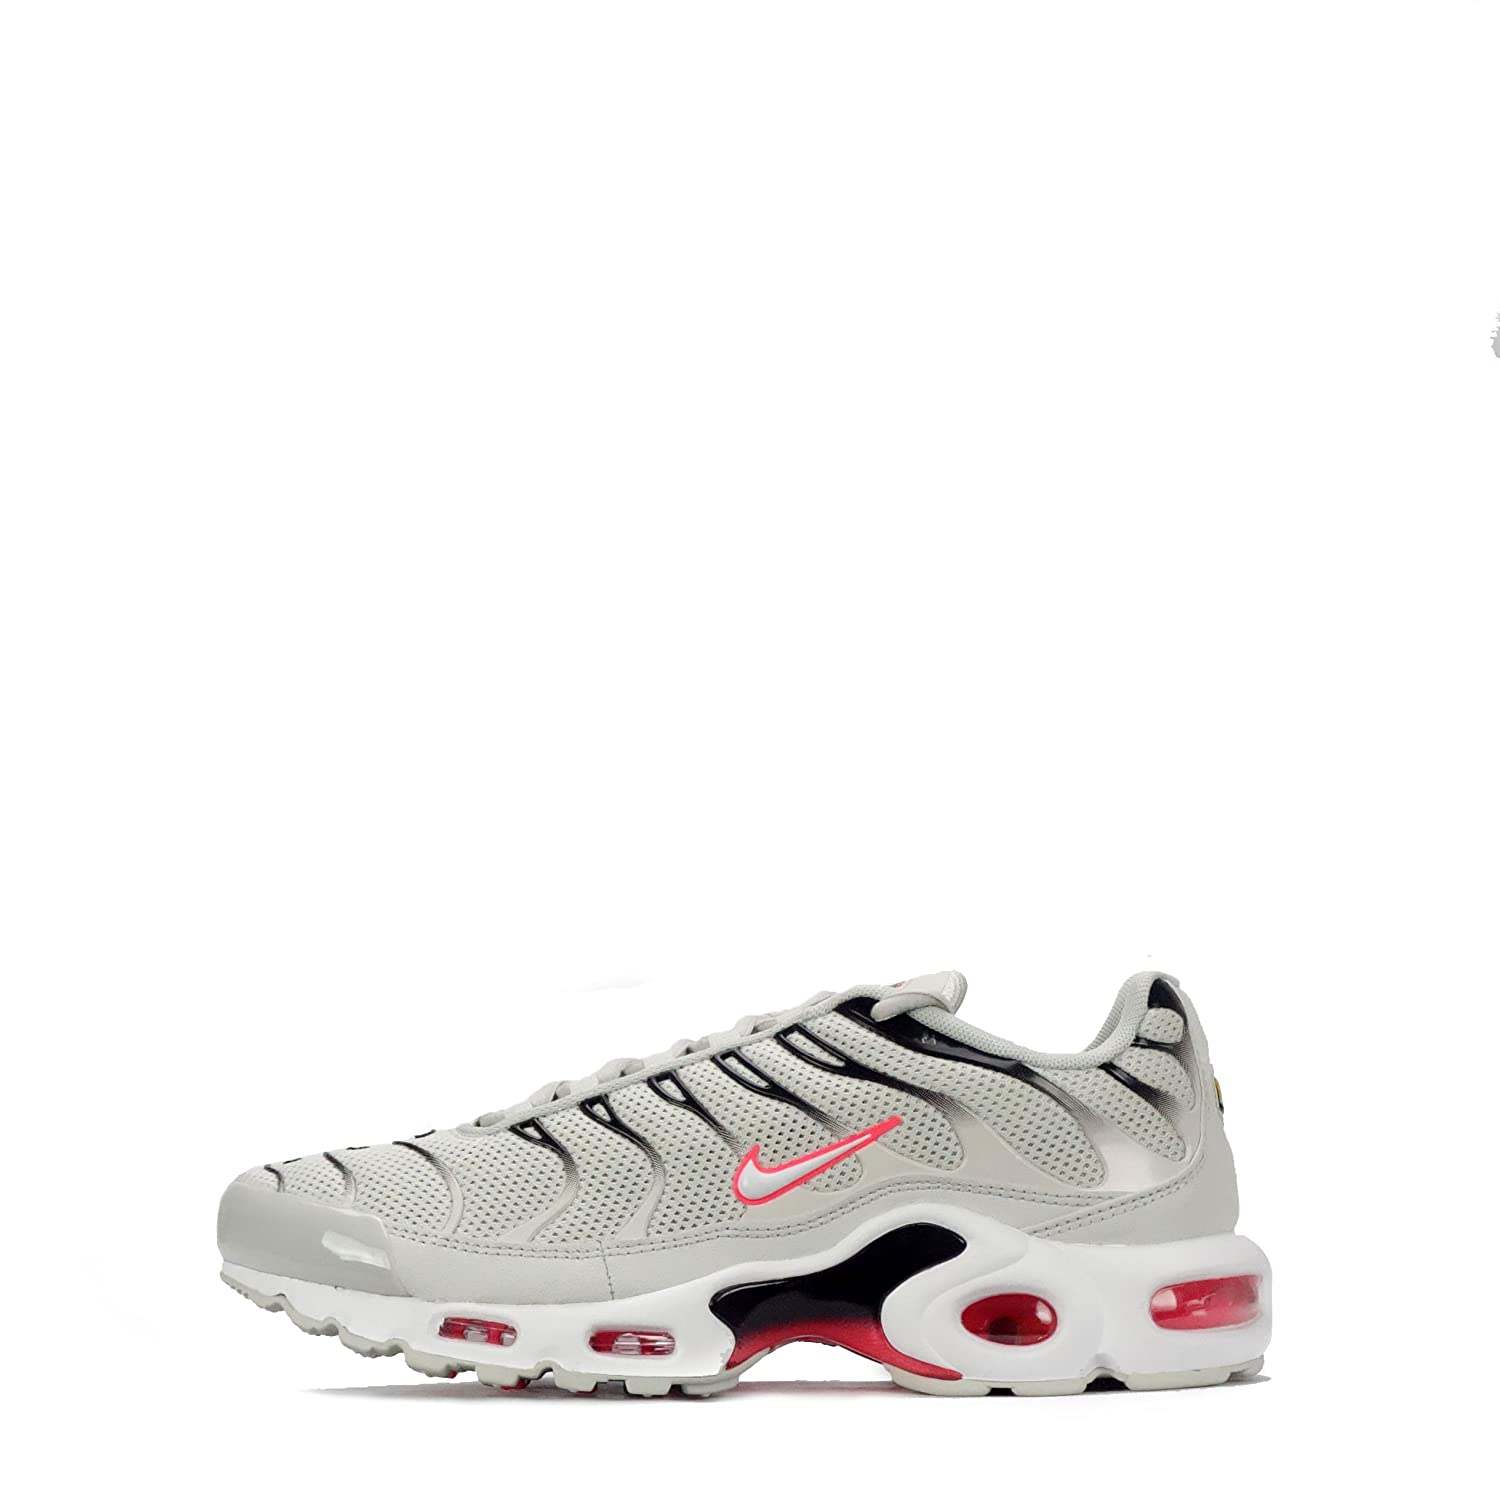 reputable site 9896c 09e44 Nike Air Max Plus TN Tuned Men s Trainers (UK 6)  Amazon.co.uk  Shoes   Bags